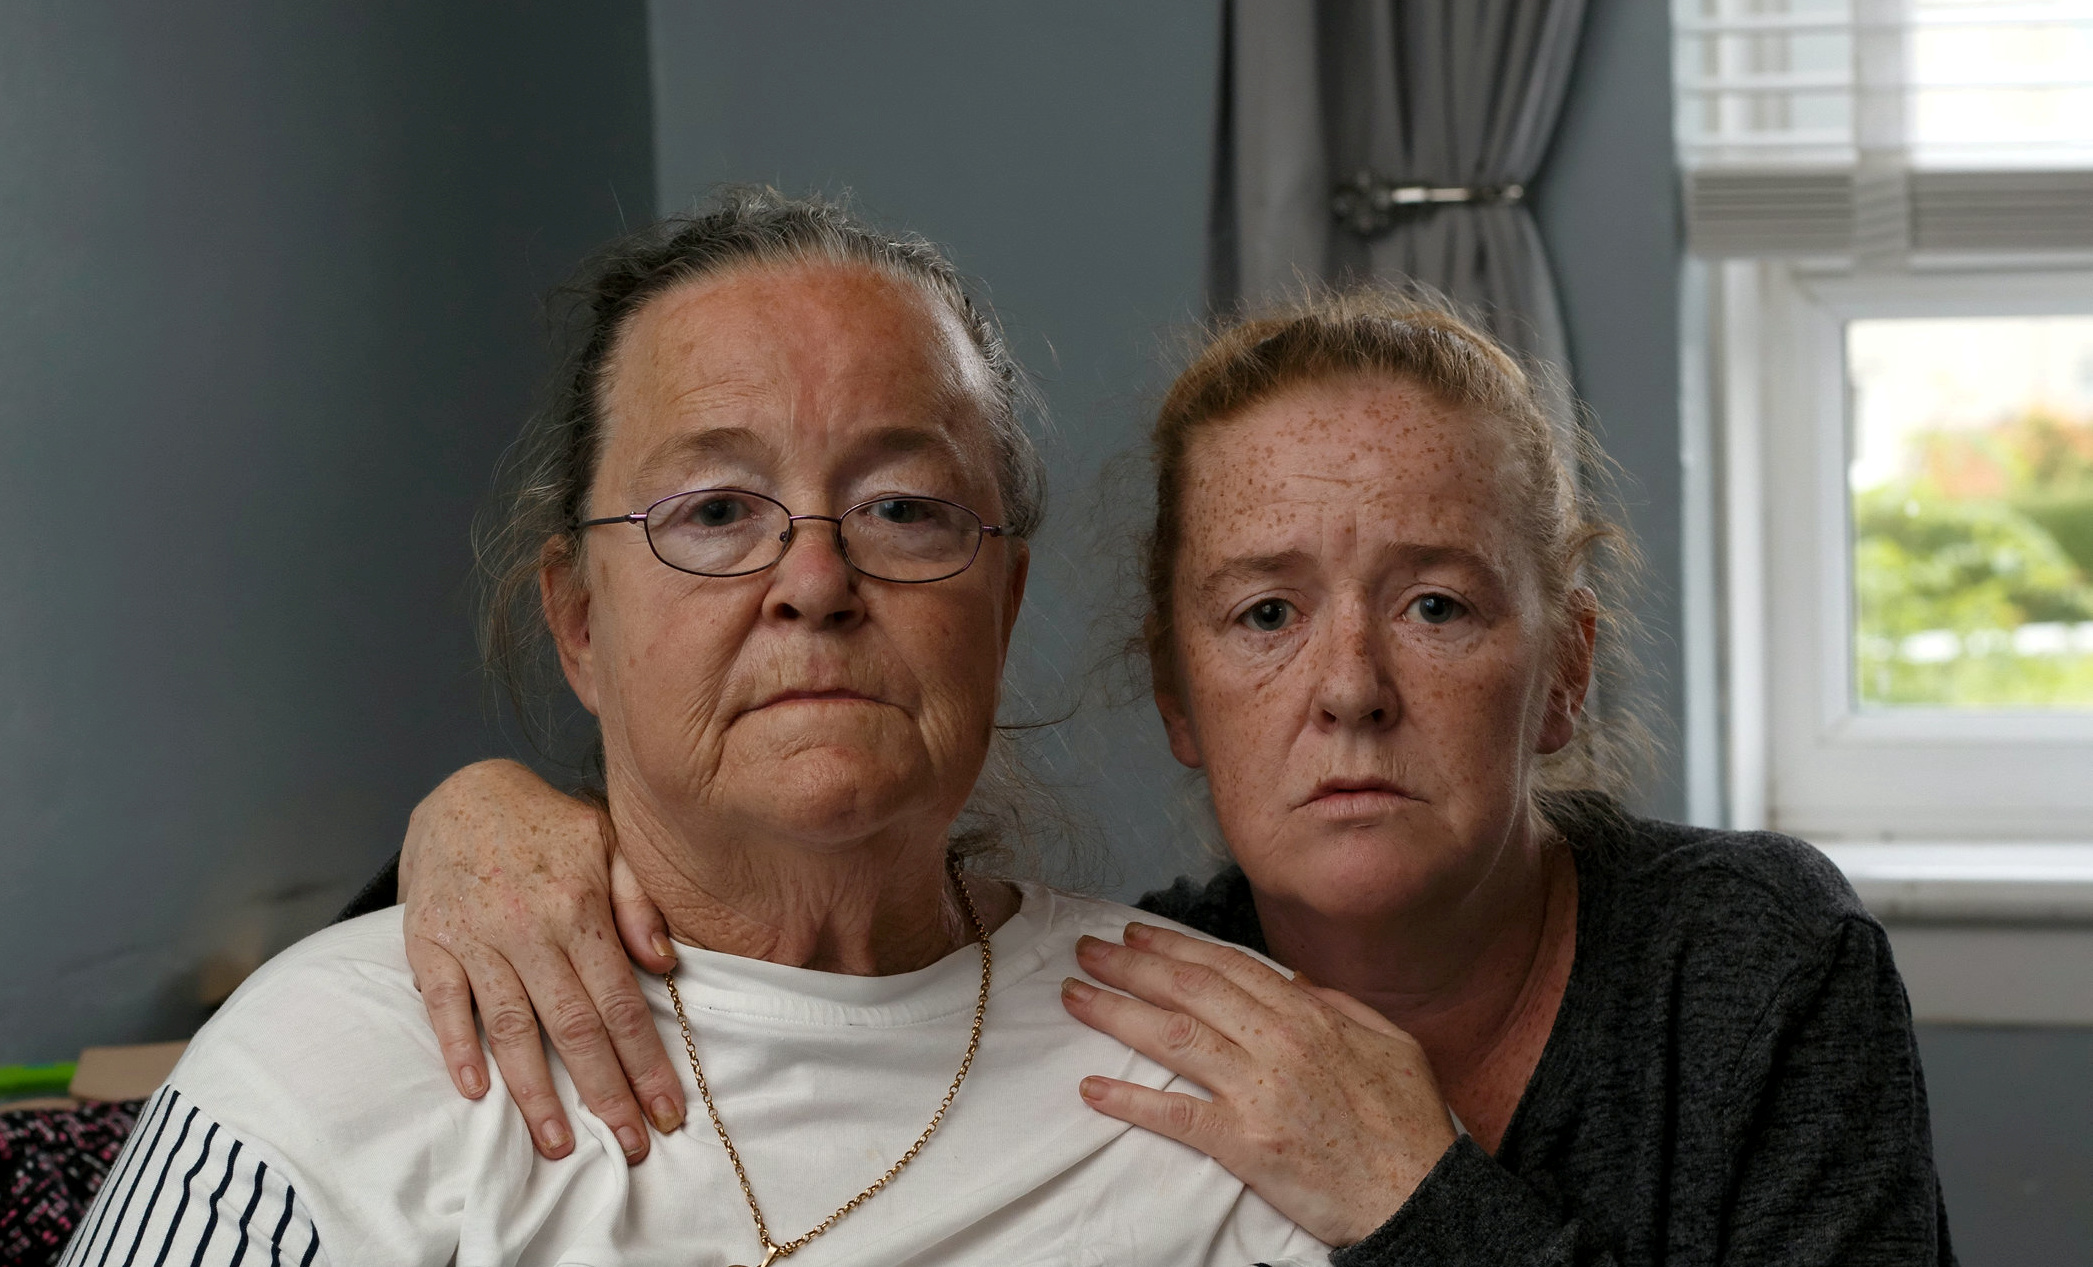 Margaret Doherty, 60, the mother of Sean Doherty, with daughter Joanne. The mother of Sean Doherty, 37, who took his own life, claims that the constant hounding of benefits staff over his Universal Credit led to his death. See SWNS story SWSCcredit. A man took his own life after being repeatedly hounded by benefits staff who claimed he was abusing Universal Credit, his grieving mum claims. Sean Doherty, 37, suffered a deep depression after the death of his father, who he had been a carer for. His family claim that staff from the Department of Work and Pensioners (DWP) accused Sean of continuing to receive a carers' allowance after the death of his dad. Tragically, his mum Margaret had taken Sean to A&E at Queen Elizabeth University Hospital in Glasgow after becoming concerned he was suicidal, five days before he died on Thursday, June 6.